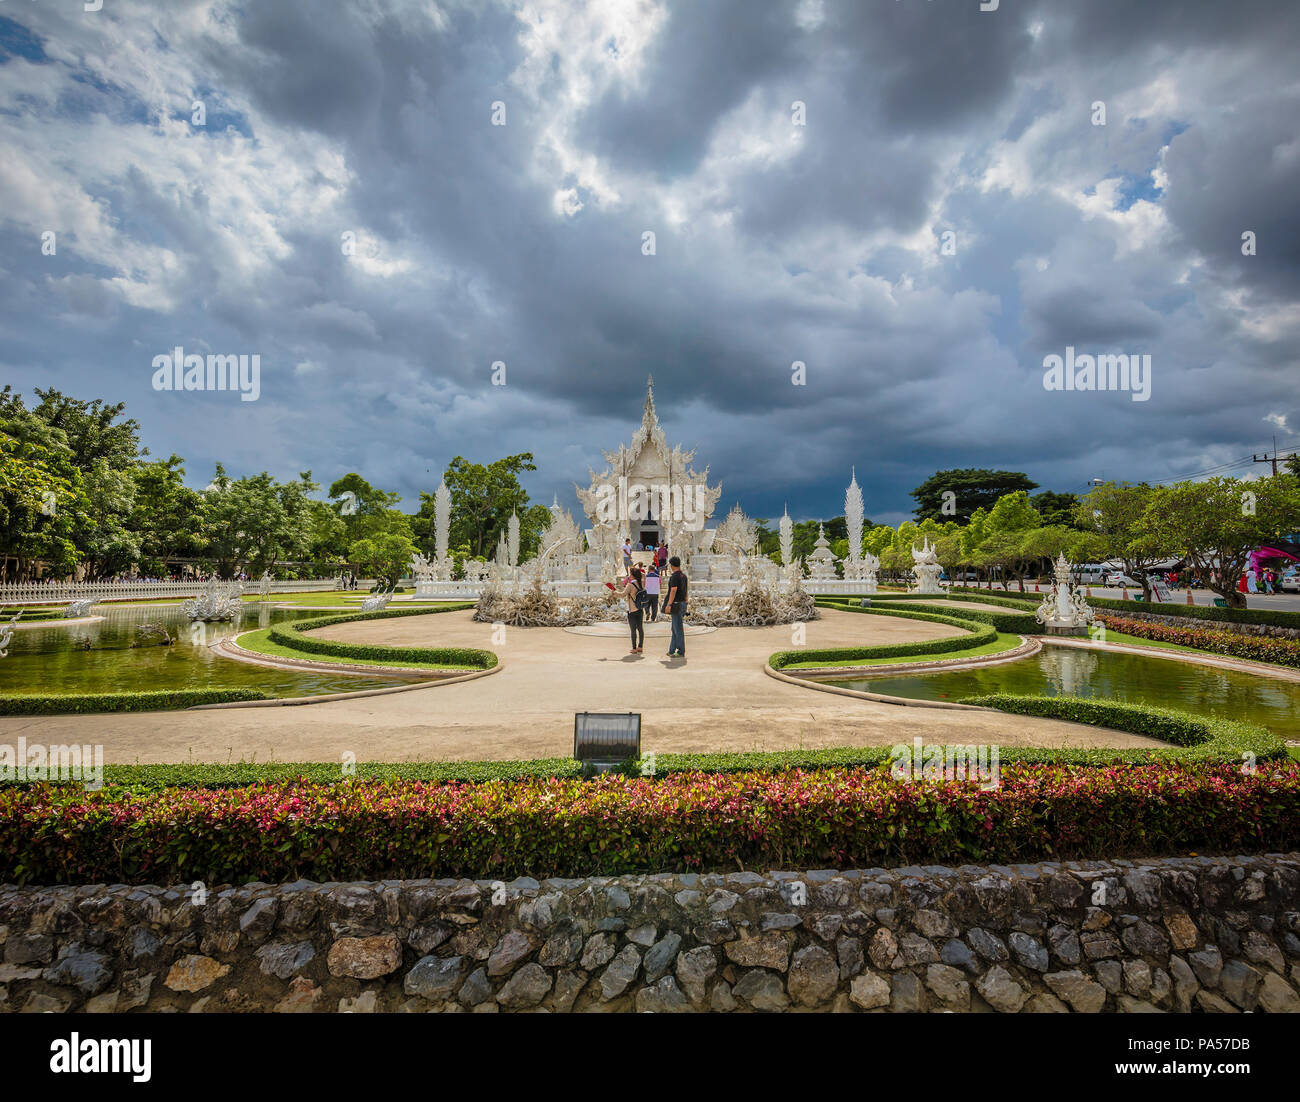 Chiang Rai (Thailand) - 10 June 2017: People are visiting the Wat Rong Khun, better known as the White Temple, a contemporary and unconventional Buddh Stock Photo